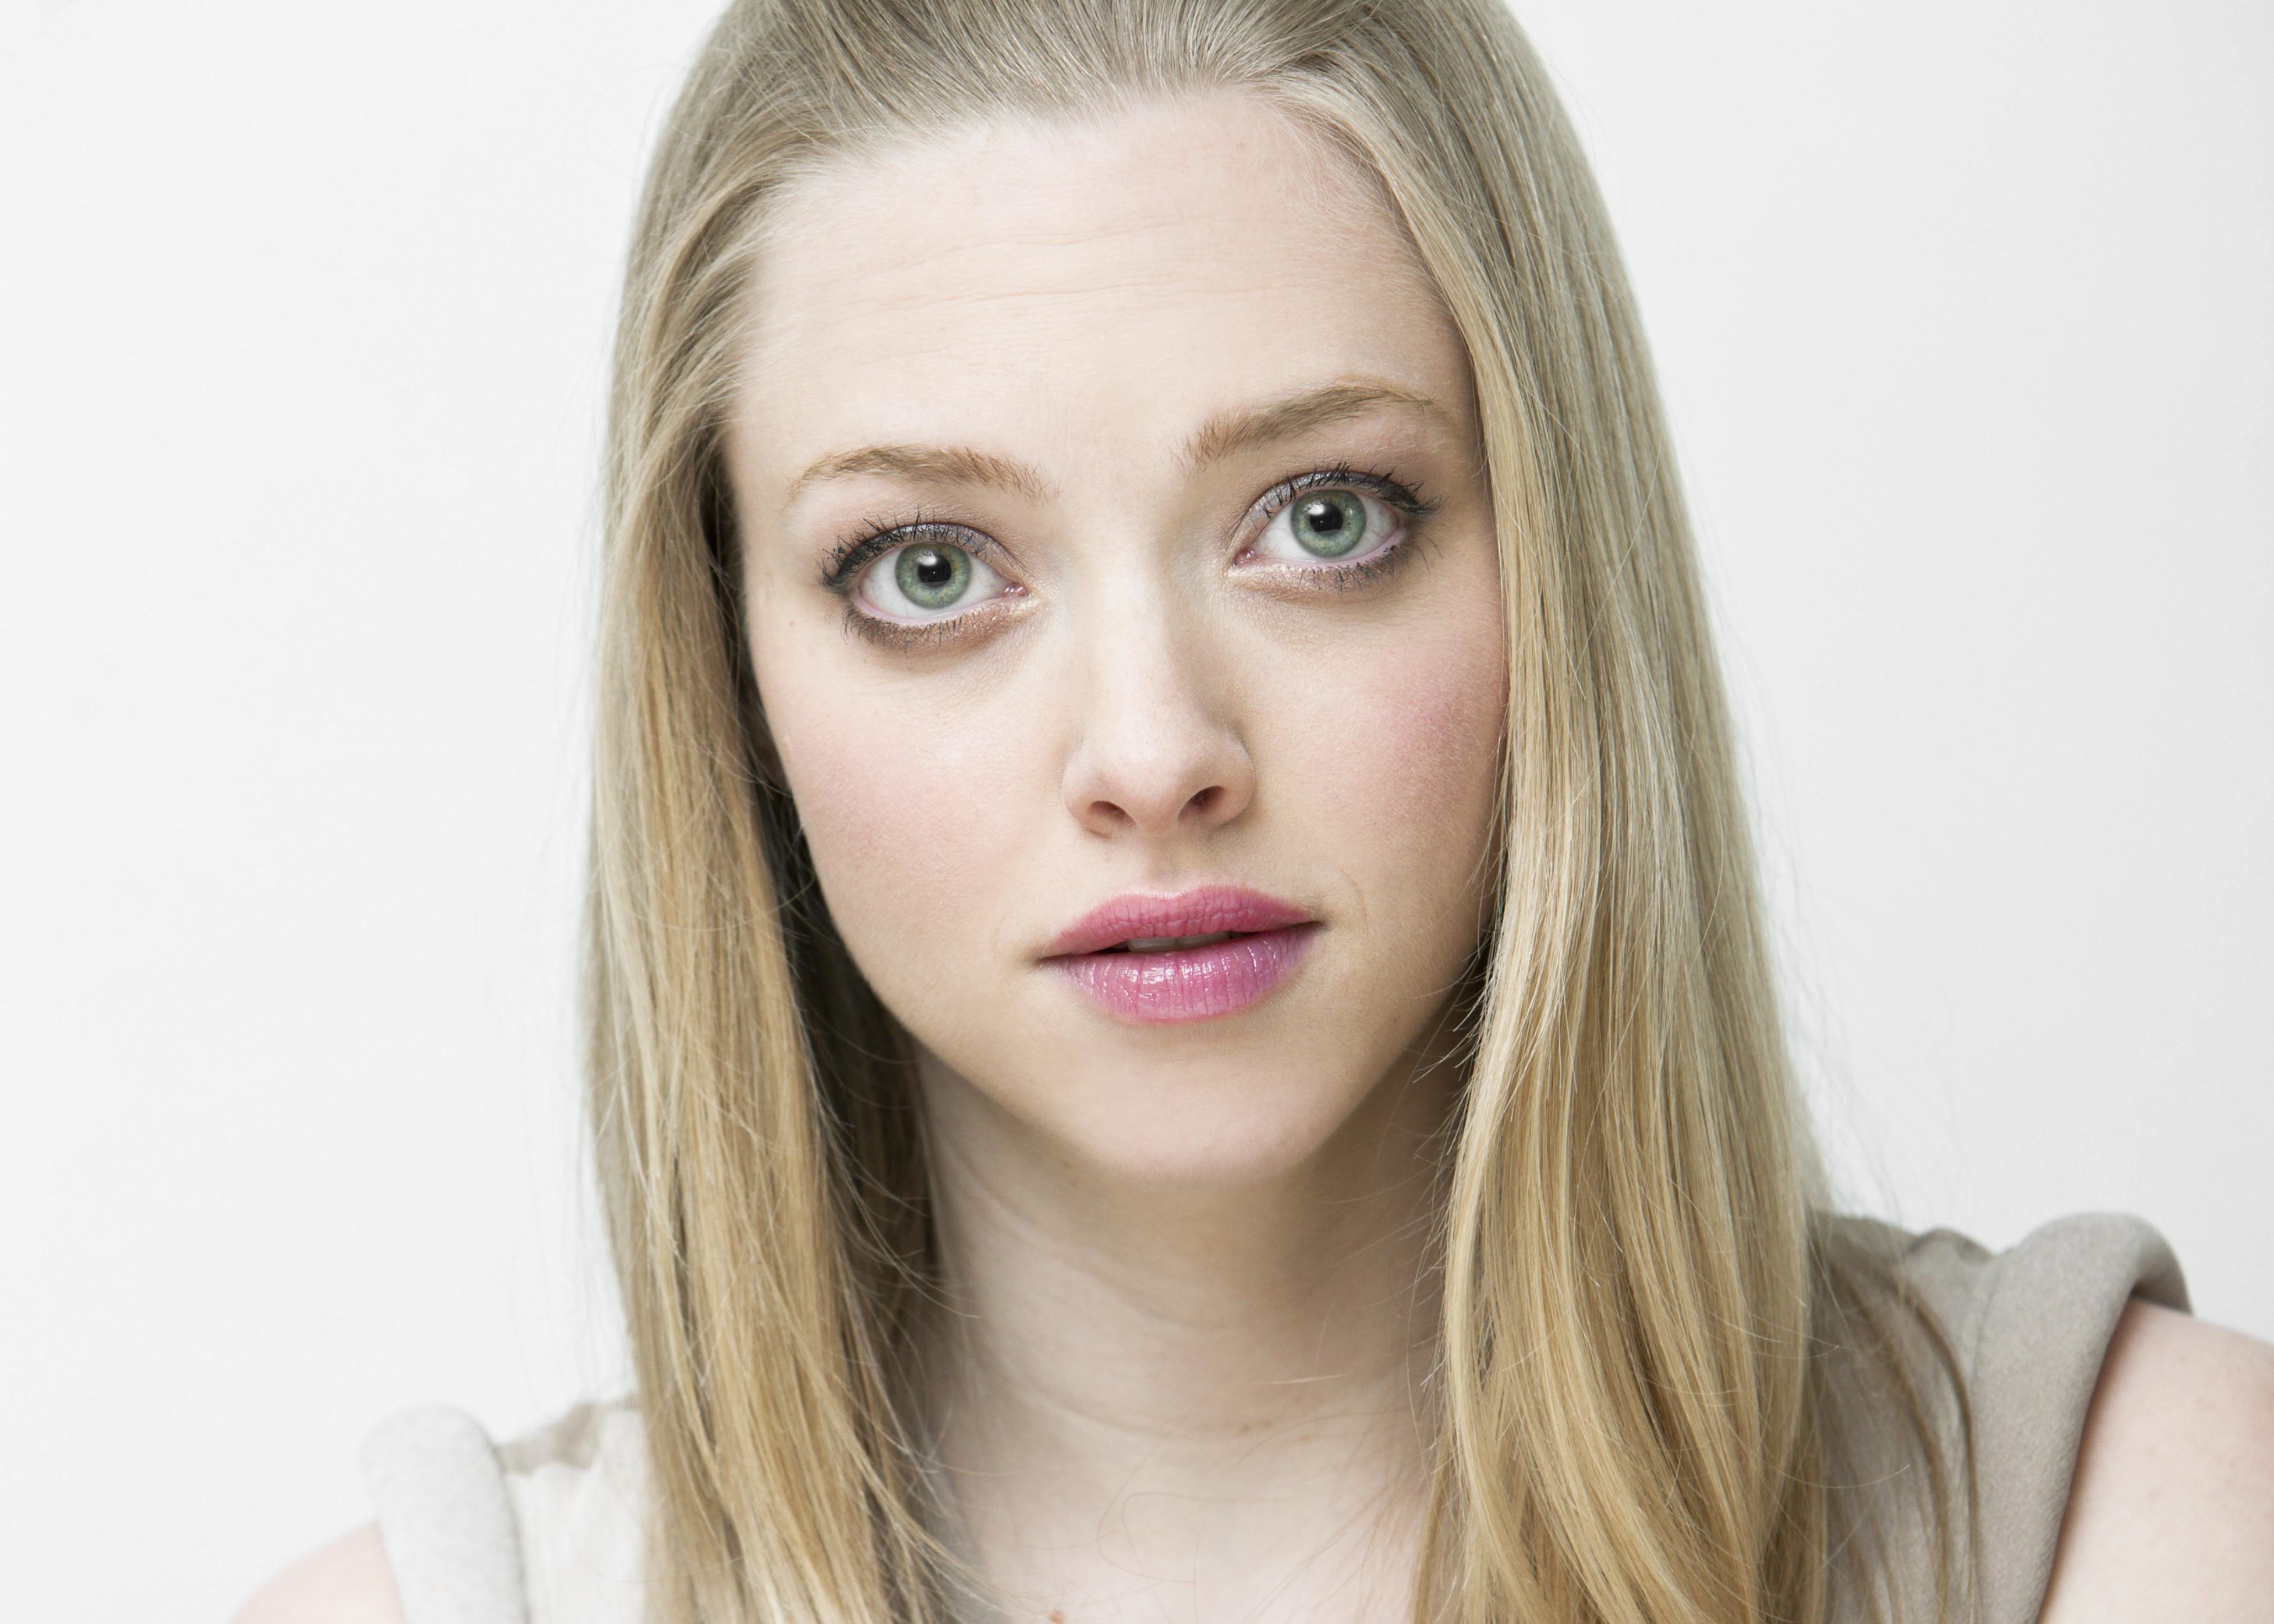 woman amanda seyfried Simple HD Wallpaper